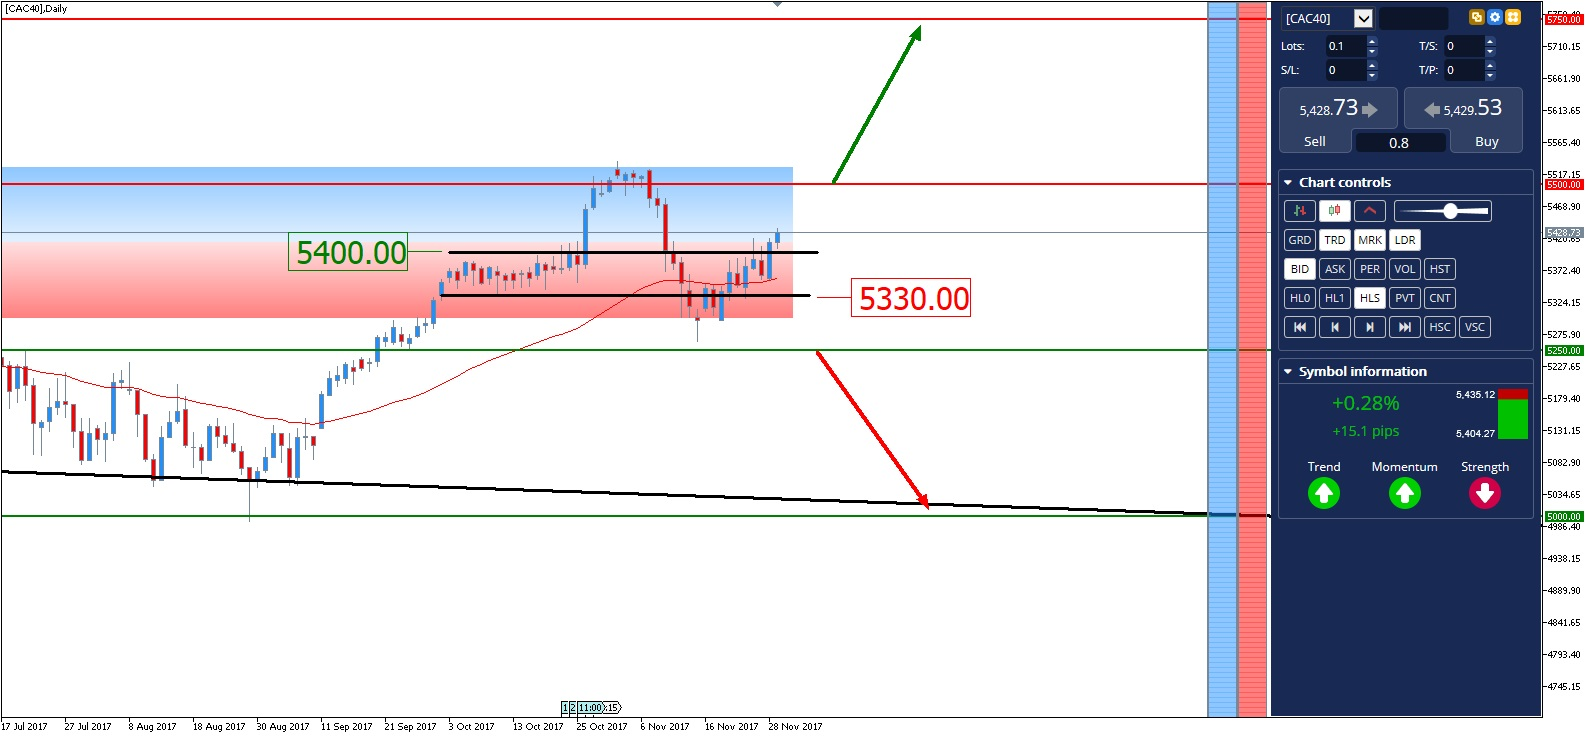 forex cac 40